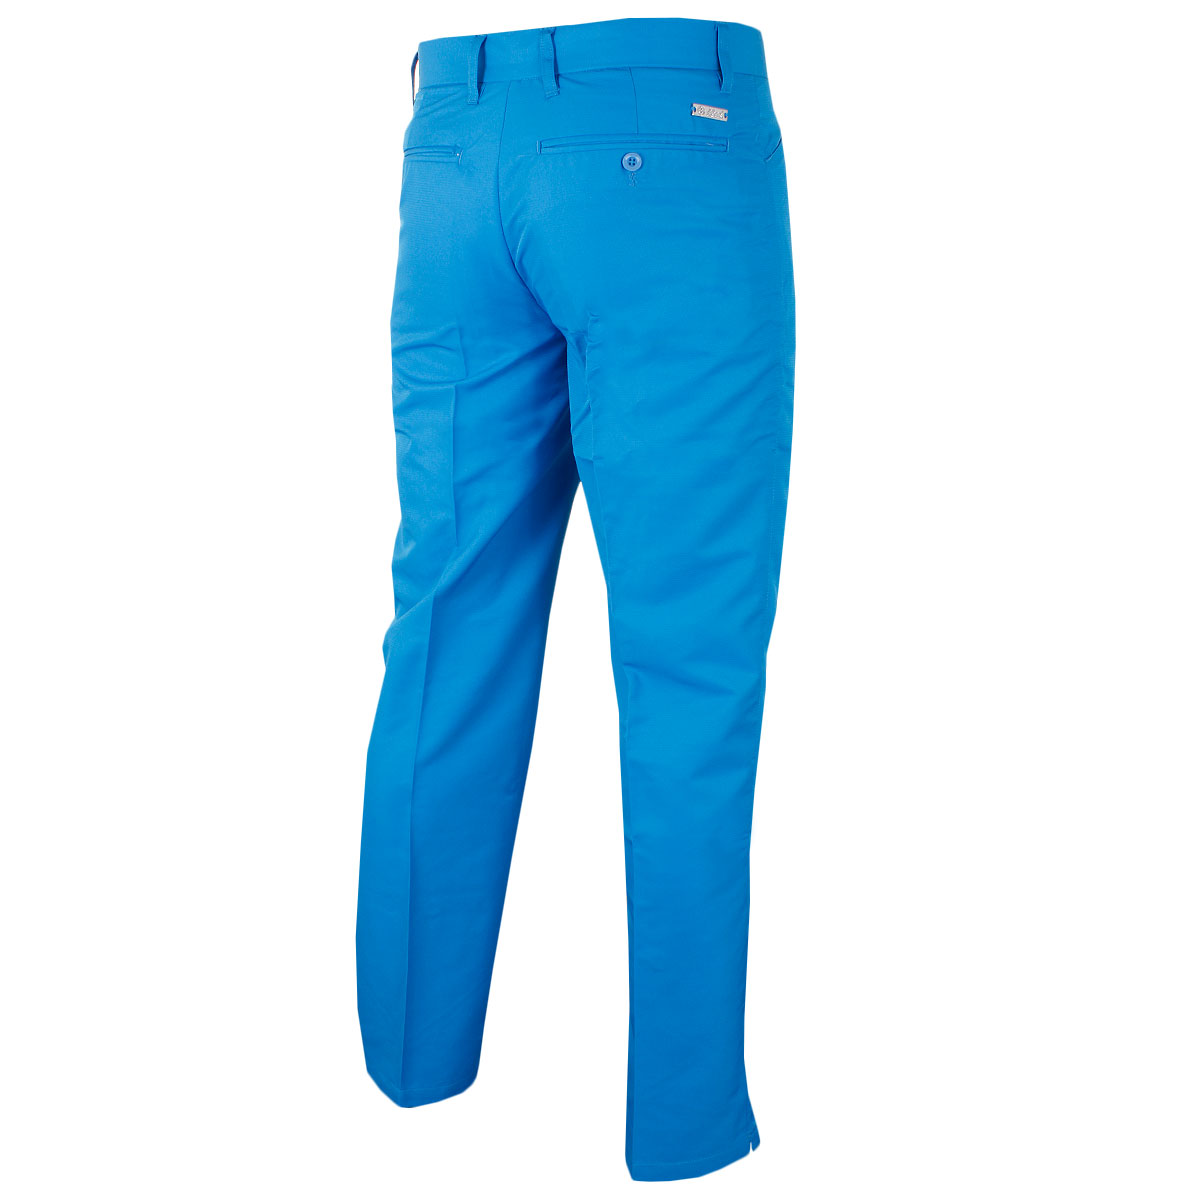 Island-Green-Mens-Tapered-Golf-Trousers-Performance-Pant-53-OFF-RRP thumbnail 9